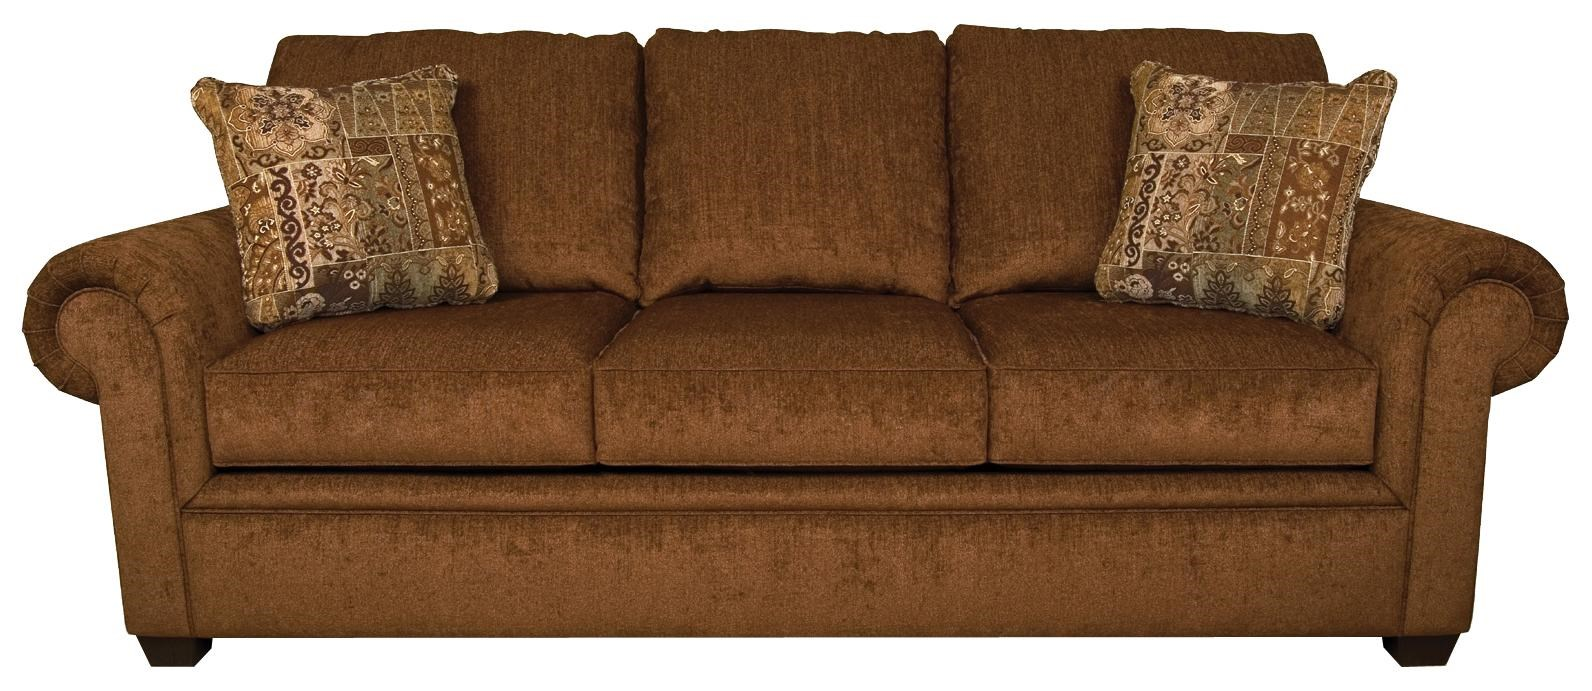 England Brett Rolled Arm Sofa With Exposed Block Legs